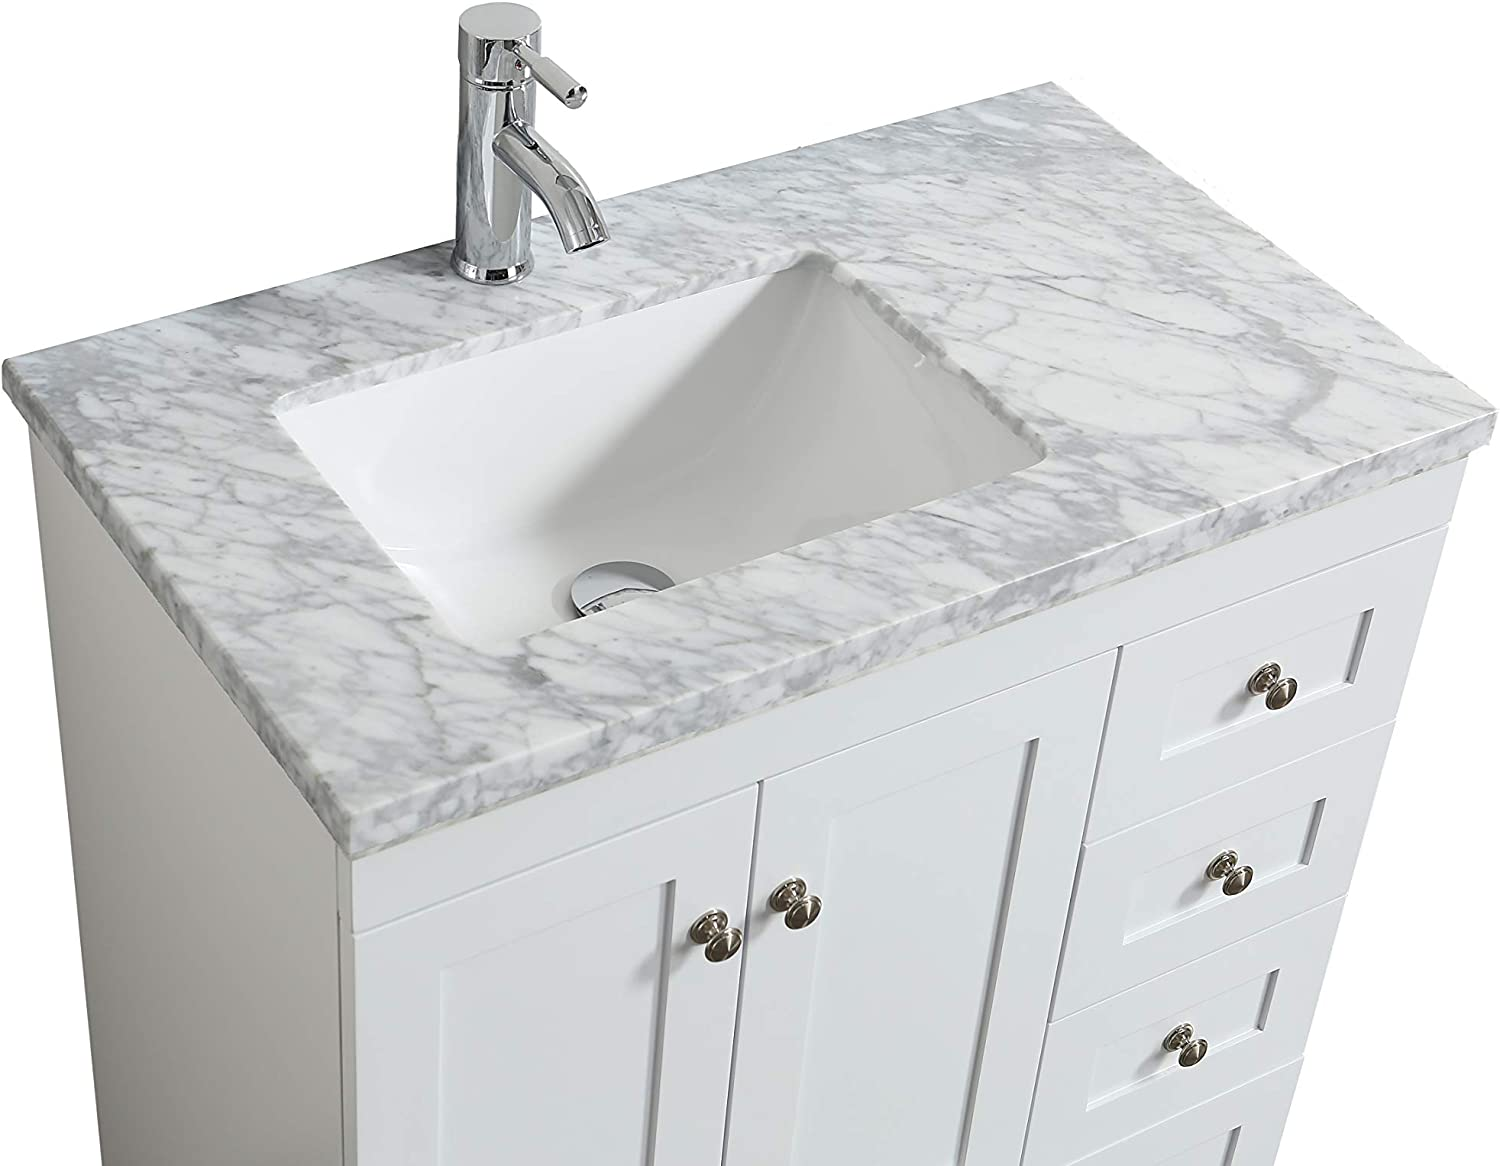 Eviva Happy 30 Inch X 18 Inch White Transitional Bathroom Vanity With White Carrara Marble Countertop And Undermount Porcelain Sink Amazon Com